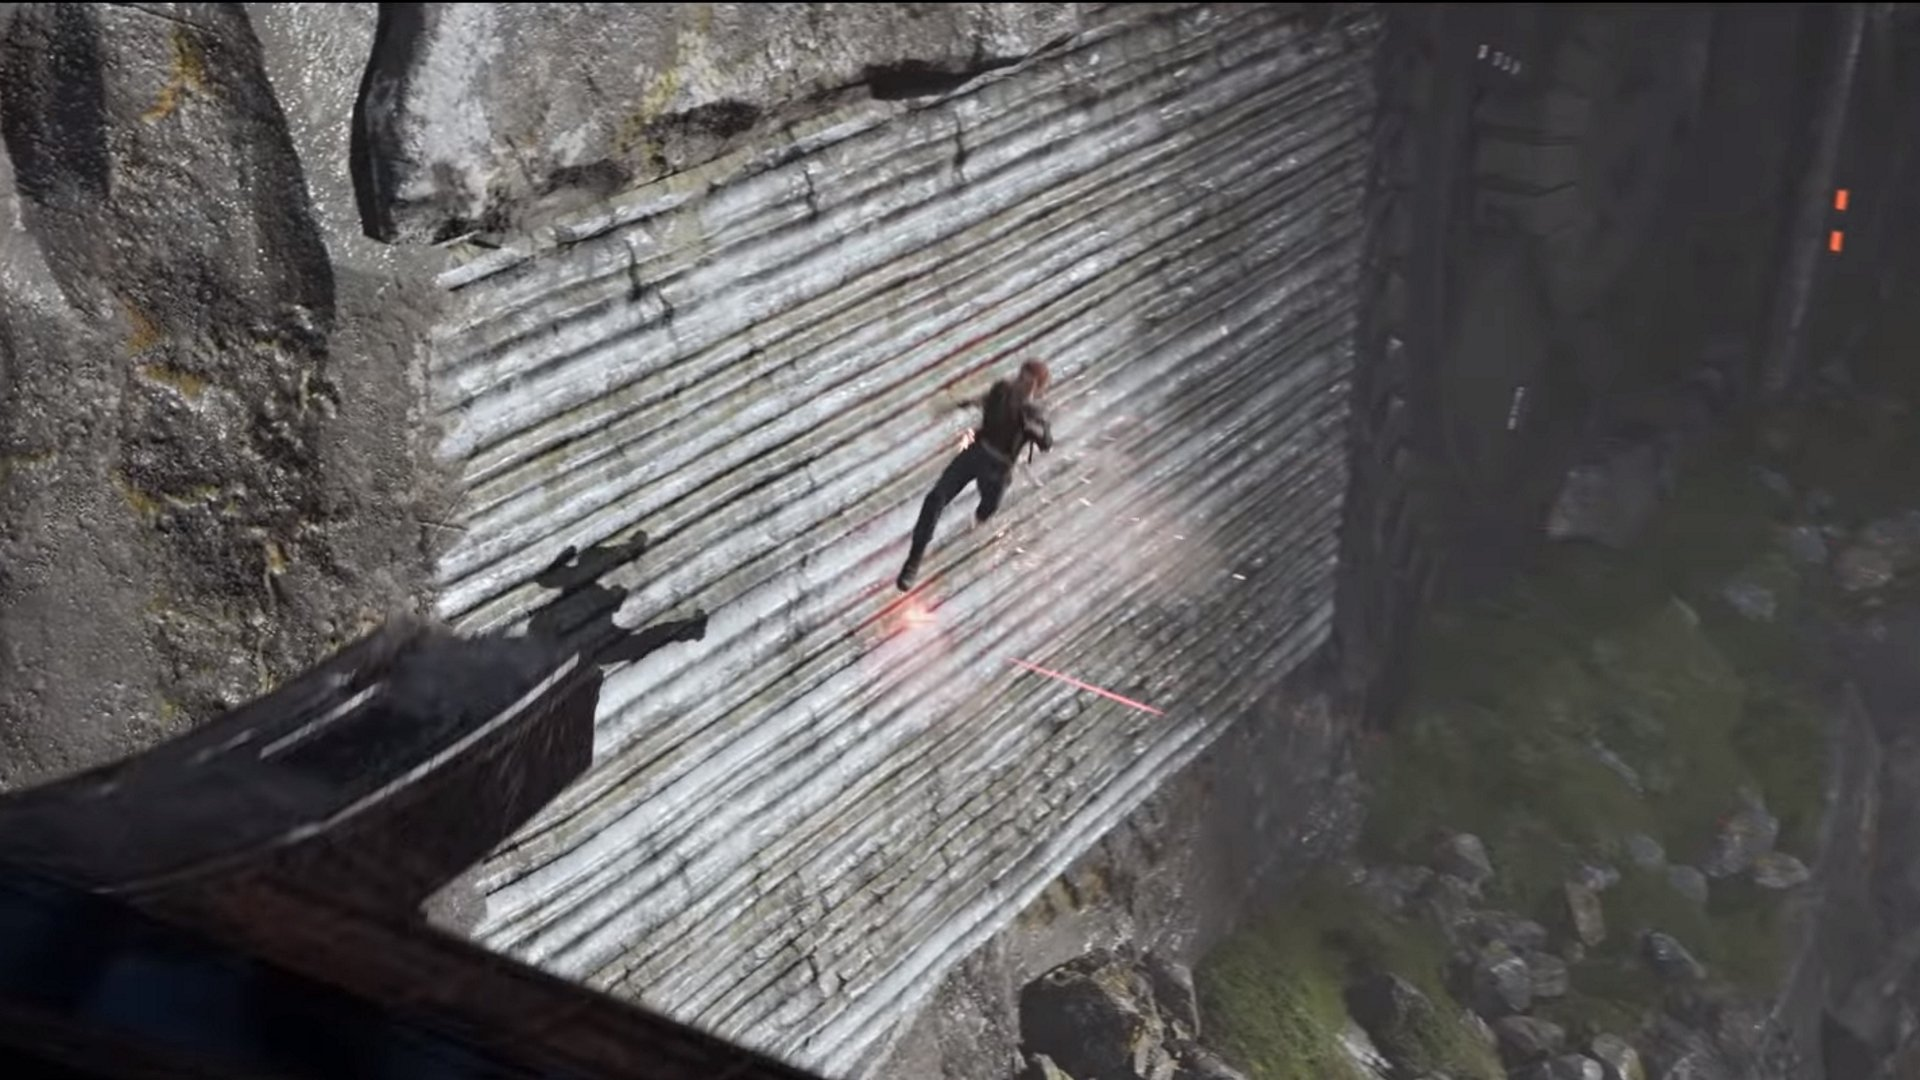 Wall running is definitely making an appearance in Star Wars Jedi: Fallen Order